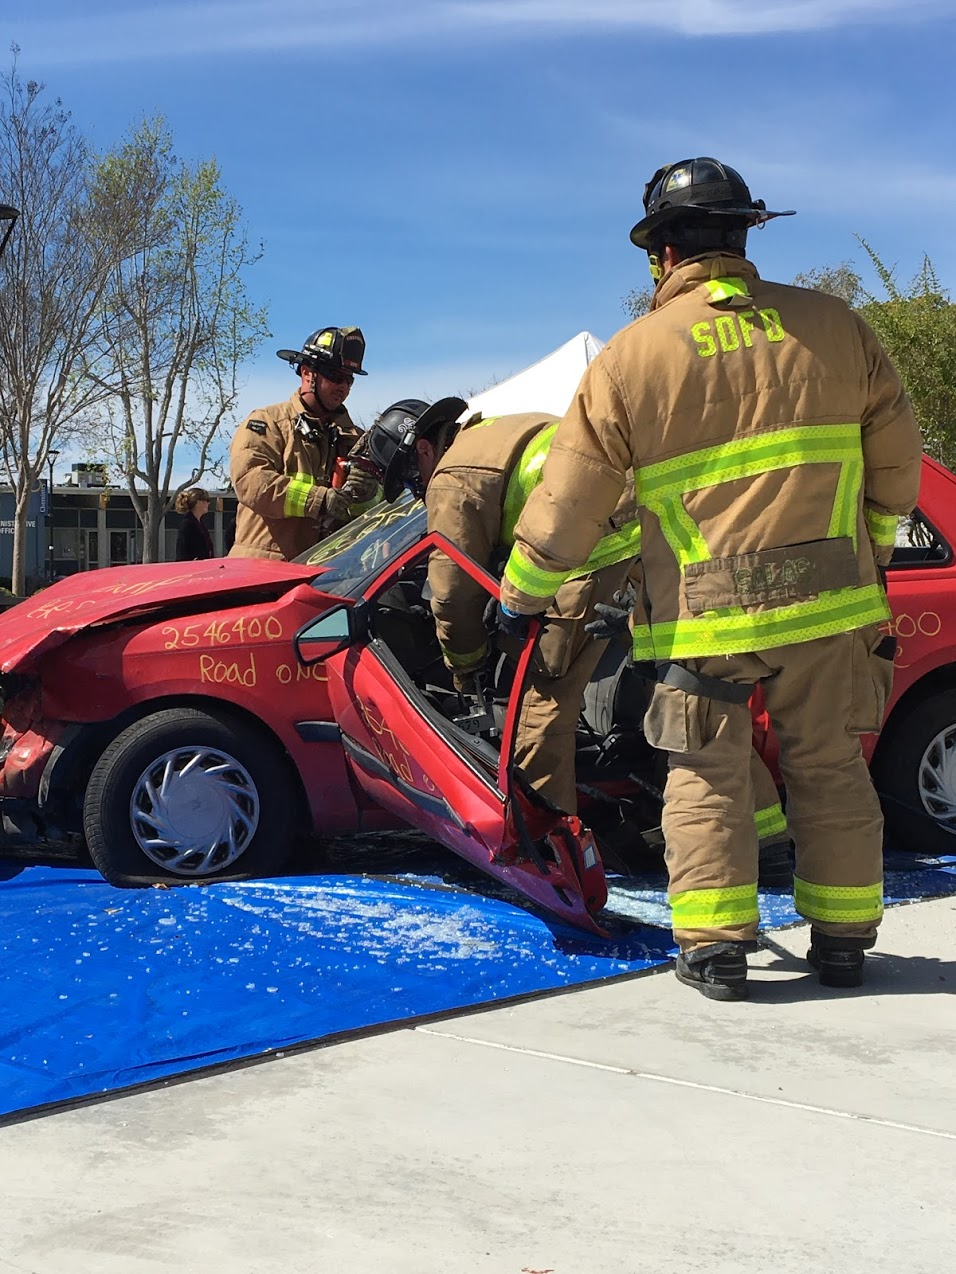 Firefighters from Station 28 in San Diego demonstrated using the Jaws of Life to rescue passengers from a wrecked vehicle